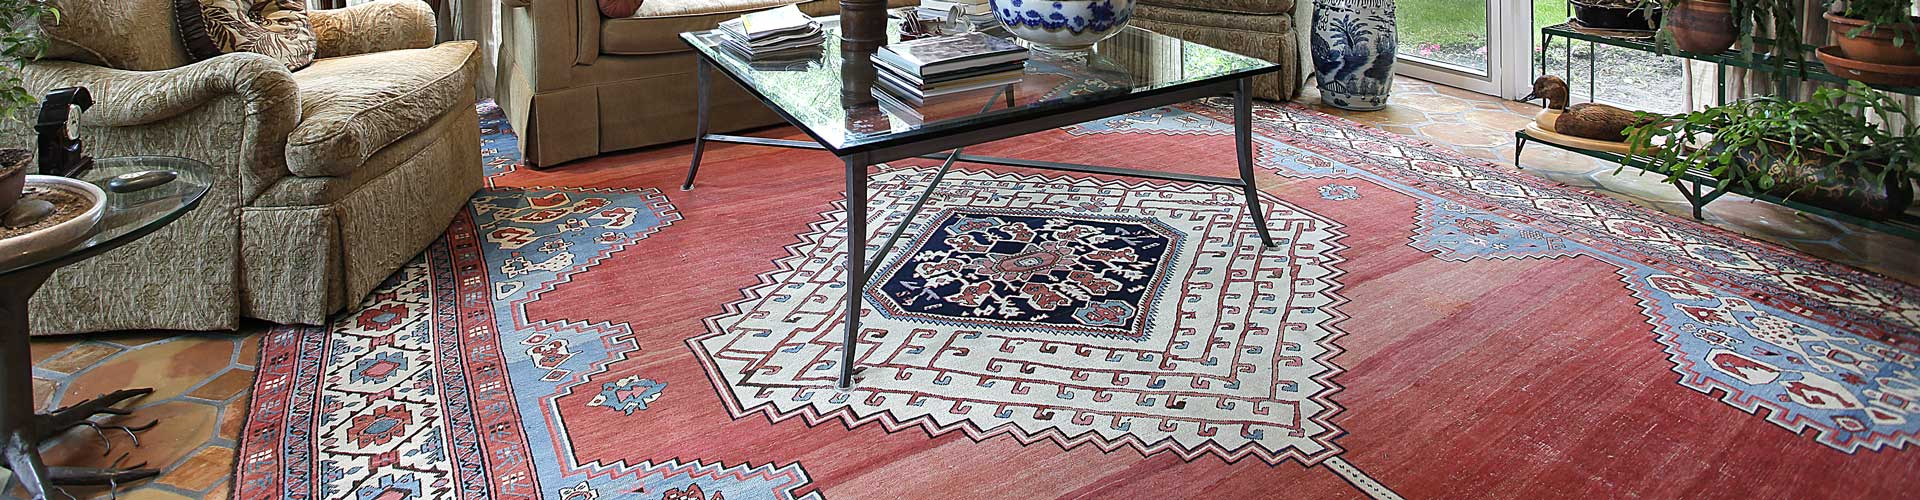 remedies rug rugs wool epic home the design for cream cleaning